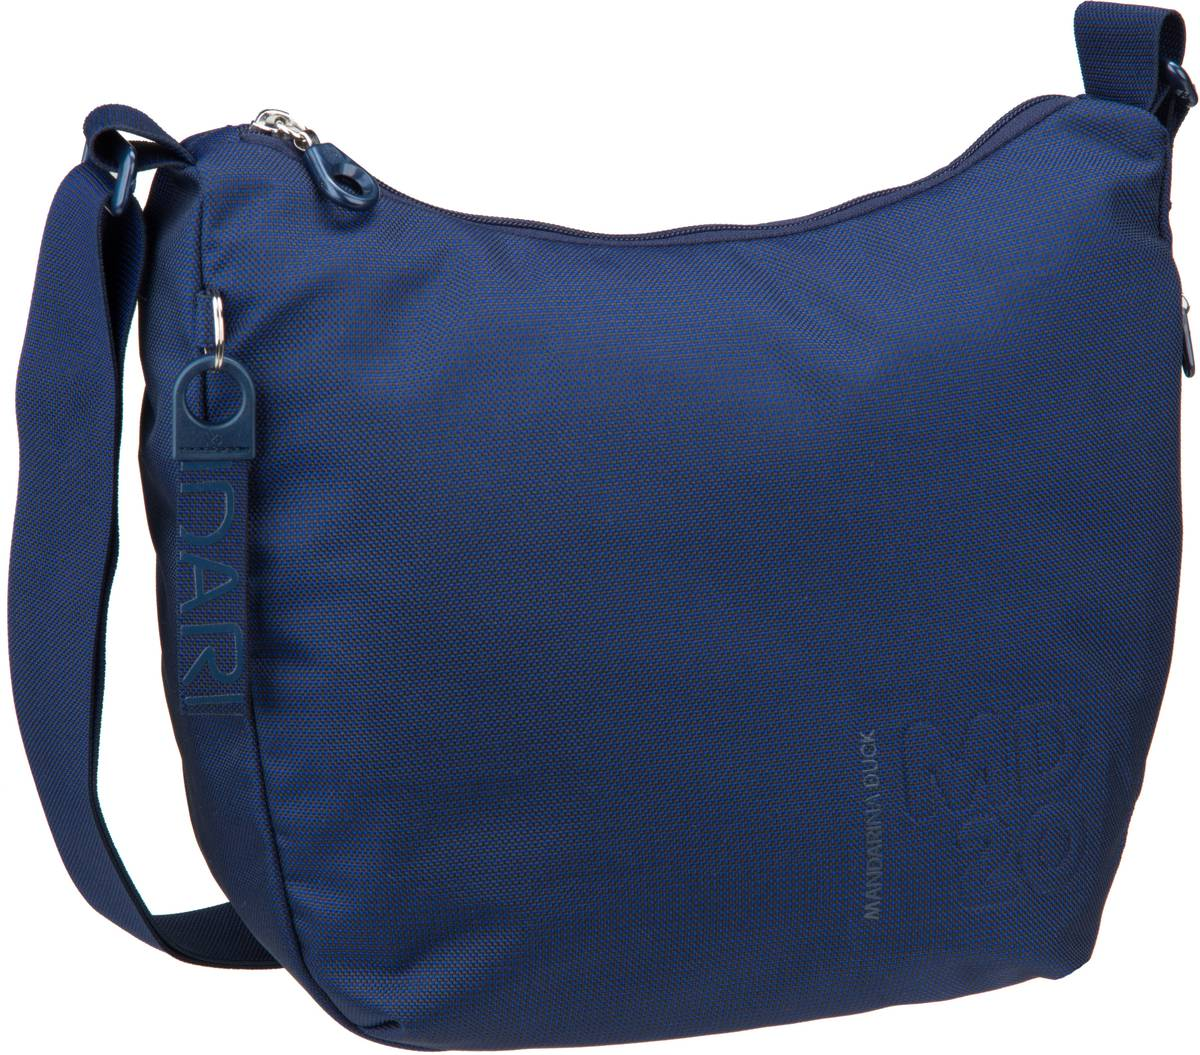 Umhängetasche MD20 Hobo QMTV1 Dress Blue